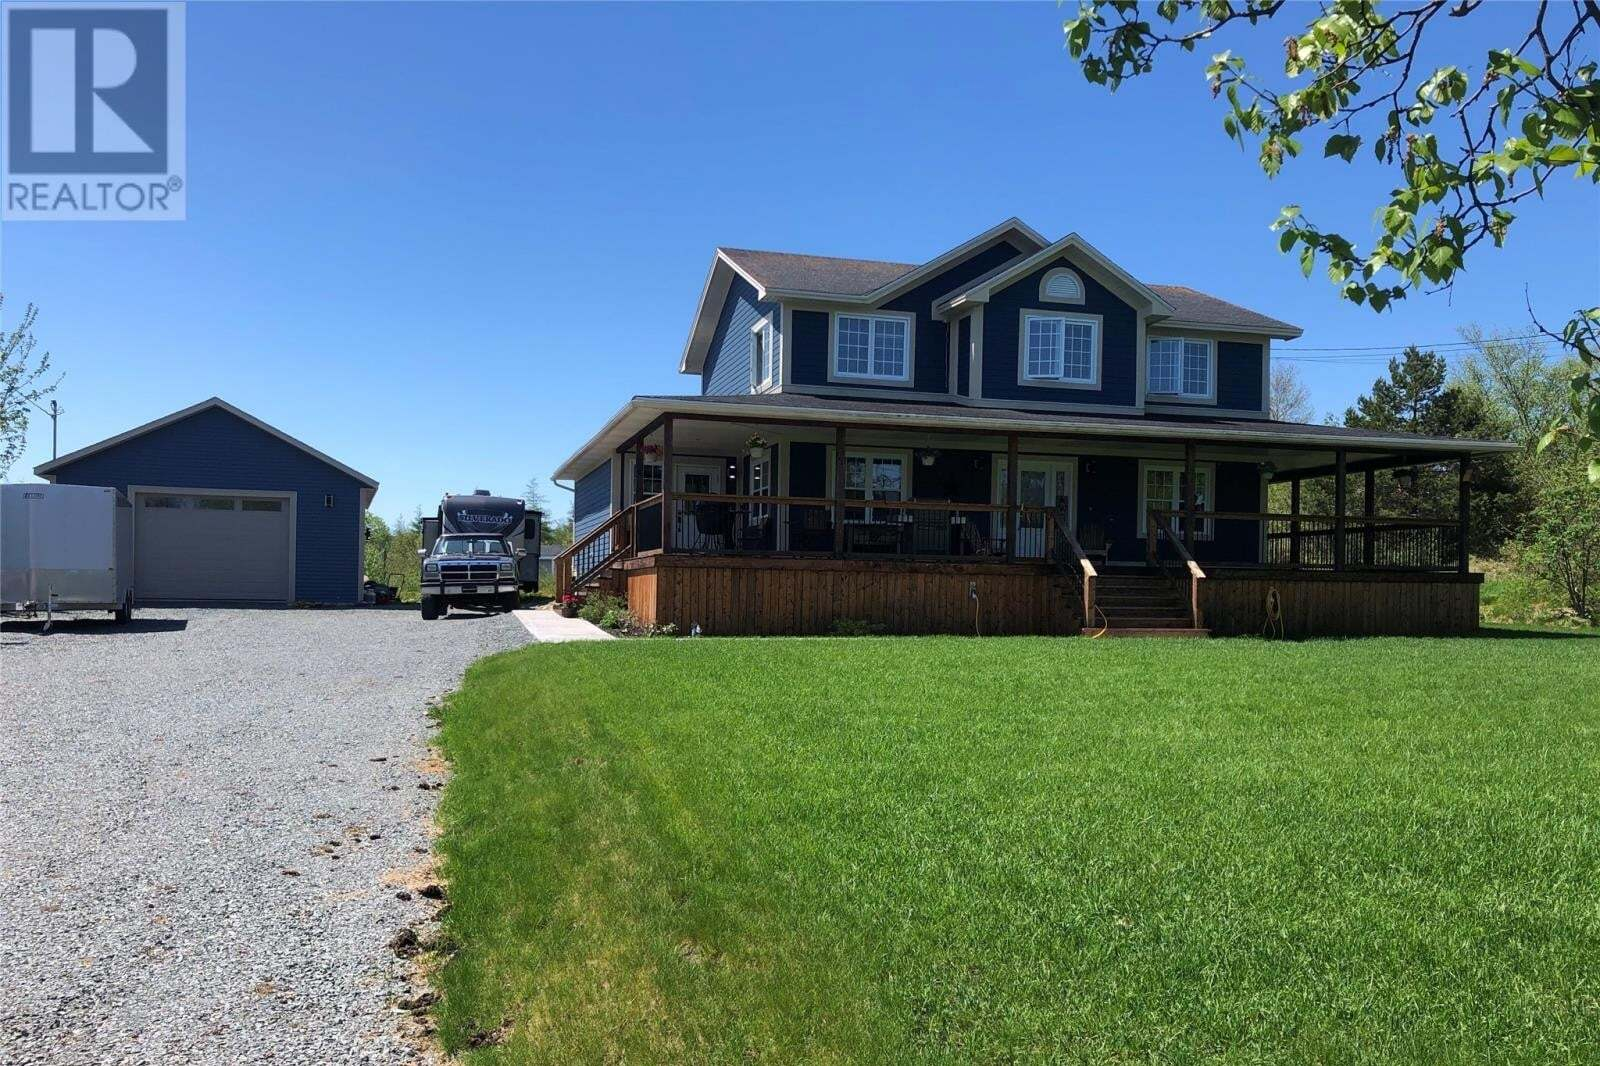 House for sale at 17 Sawdust Rd Bay Roberts Newfoundland - MLS: 1214633